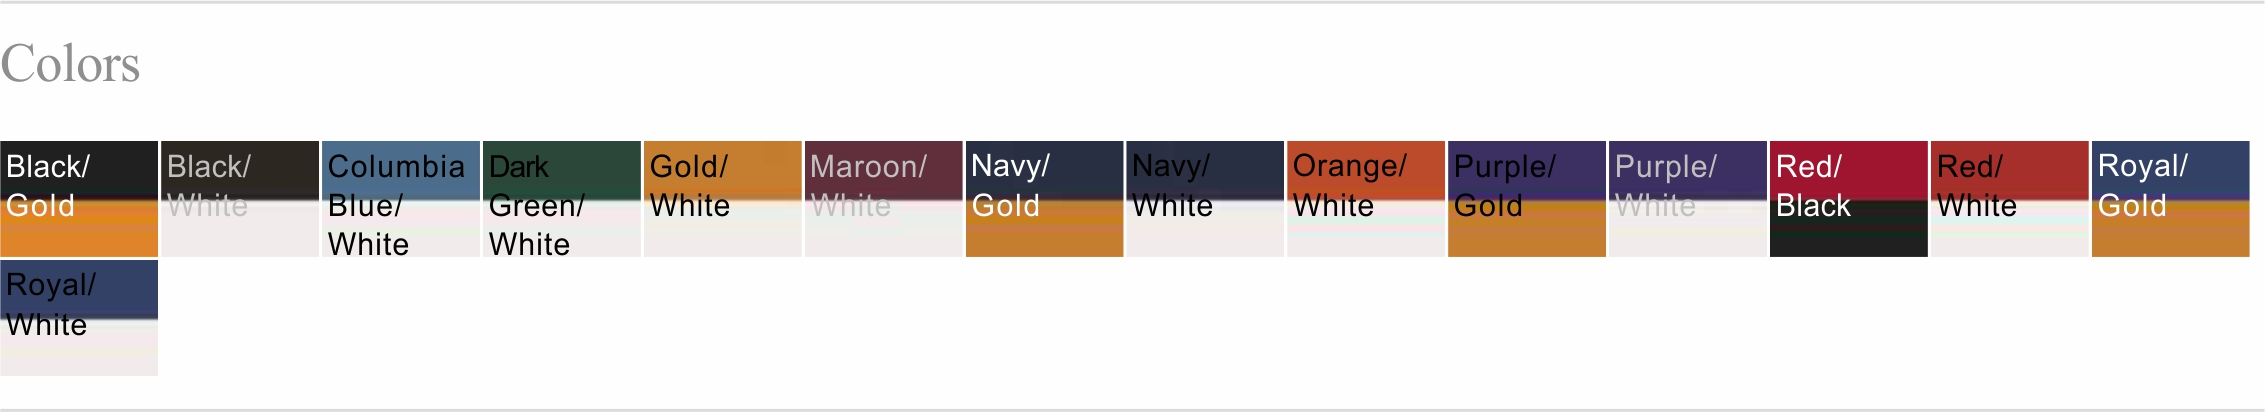 197 Color Chart